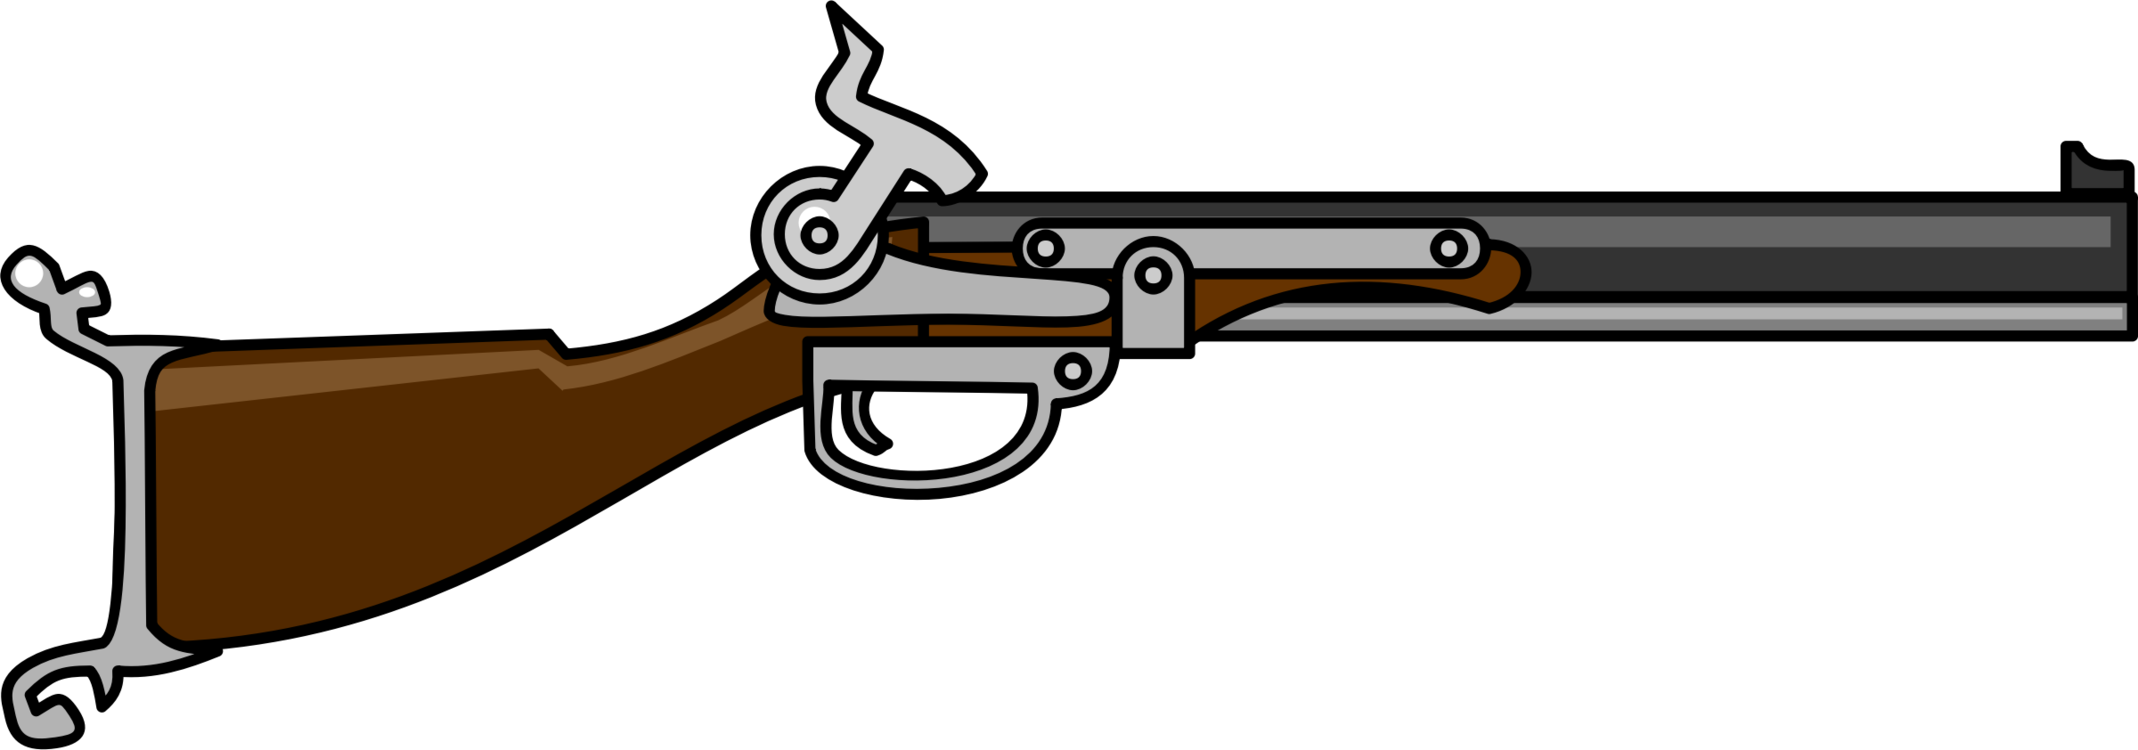 Gun Barrel,Shotgun,Ranged Weapon Vector Clipart.